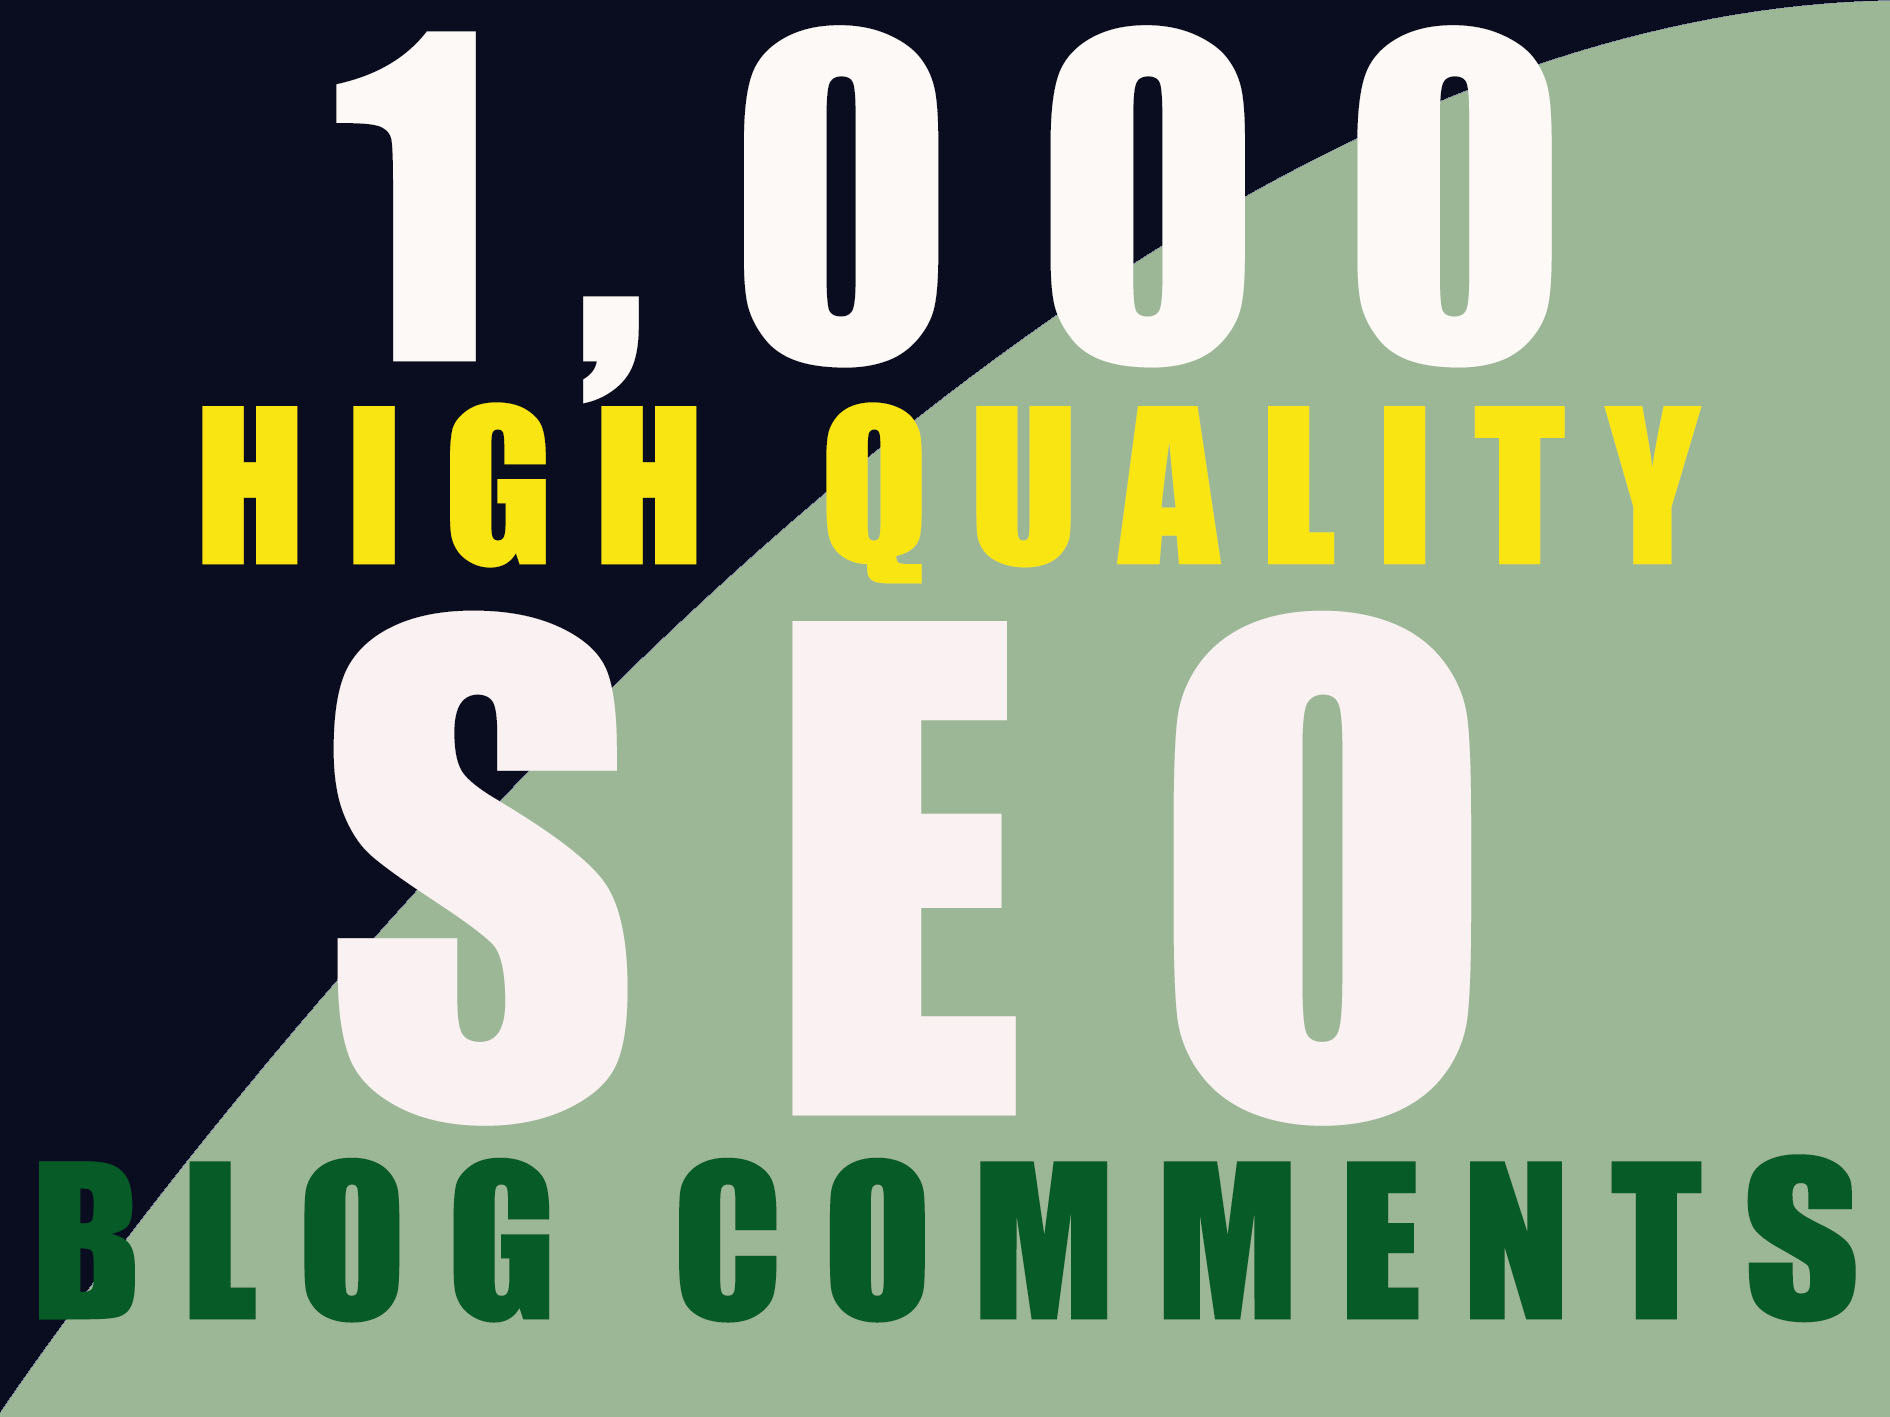 1000 High Quality blog comments for SEO